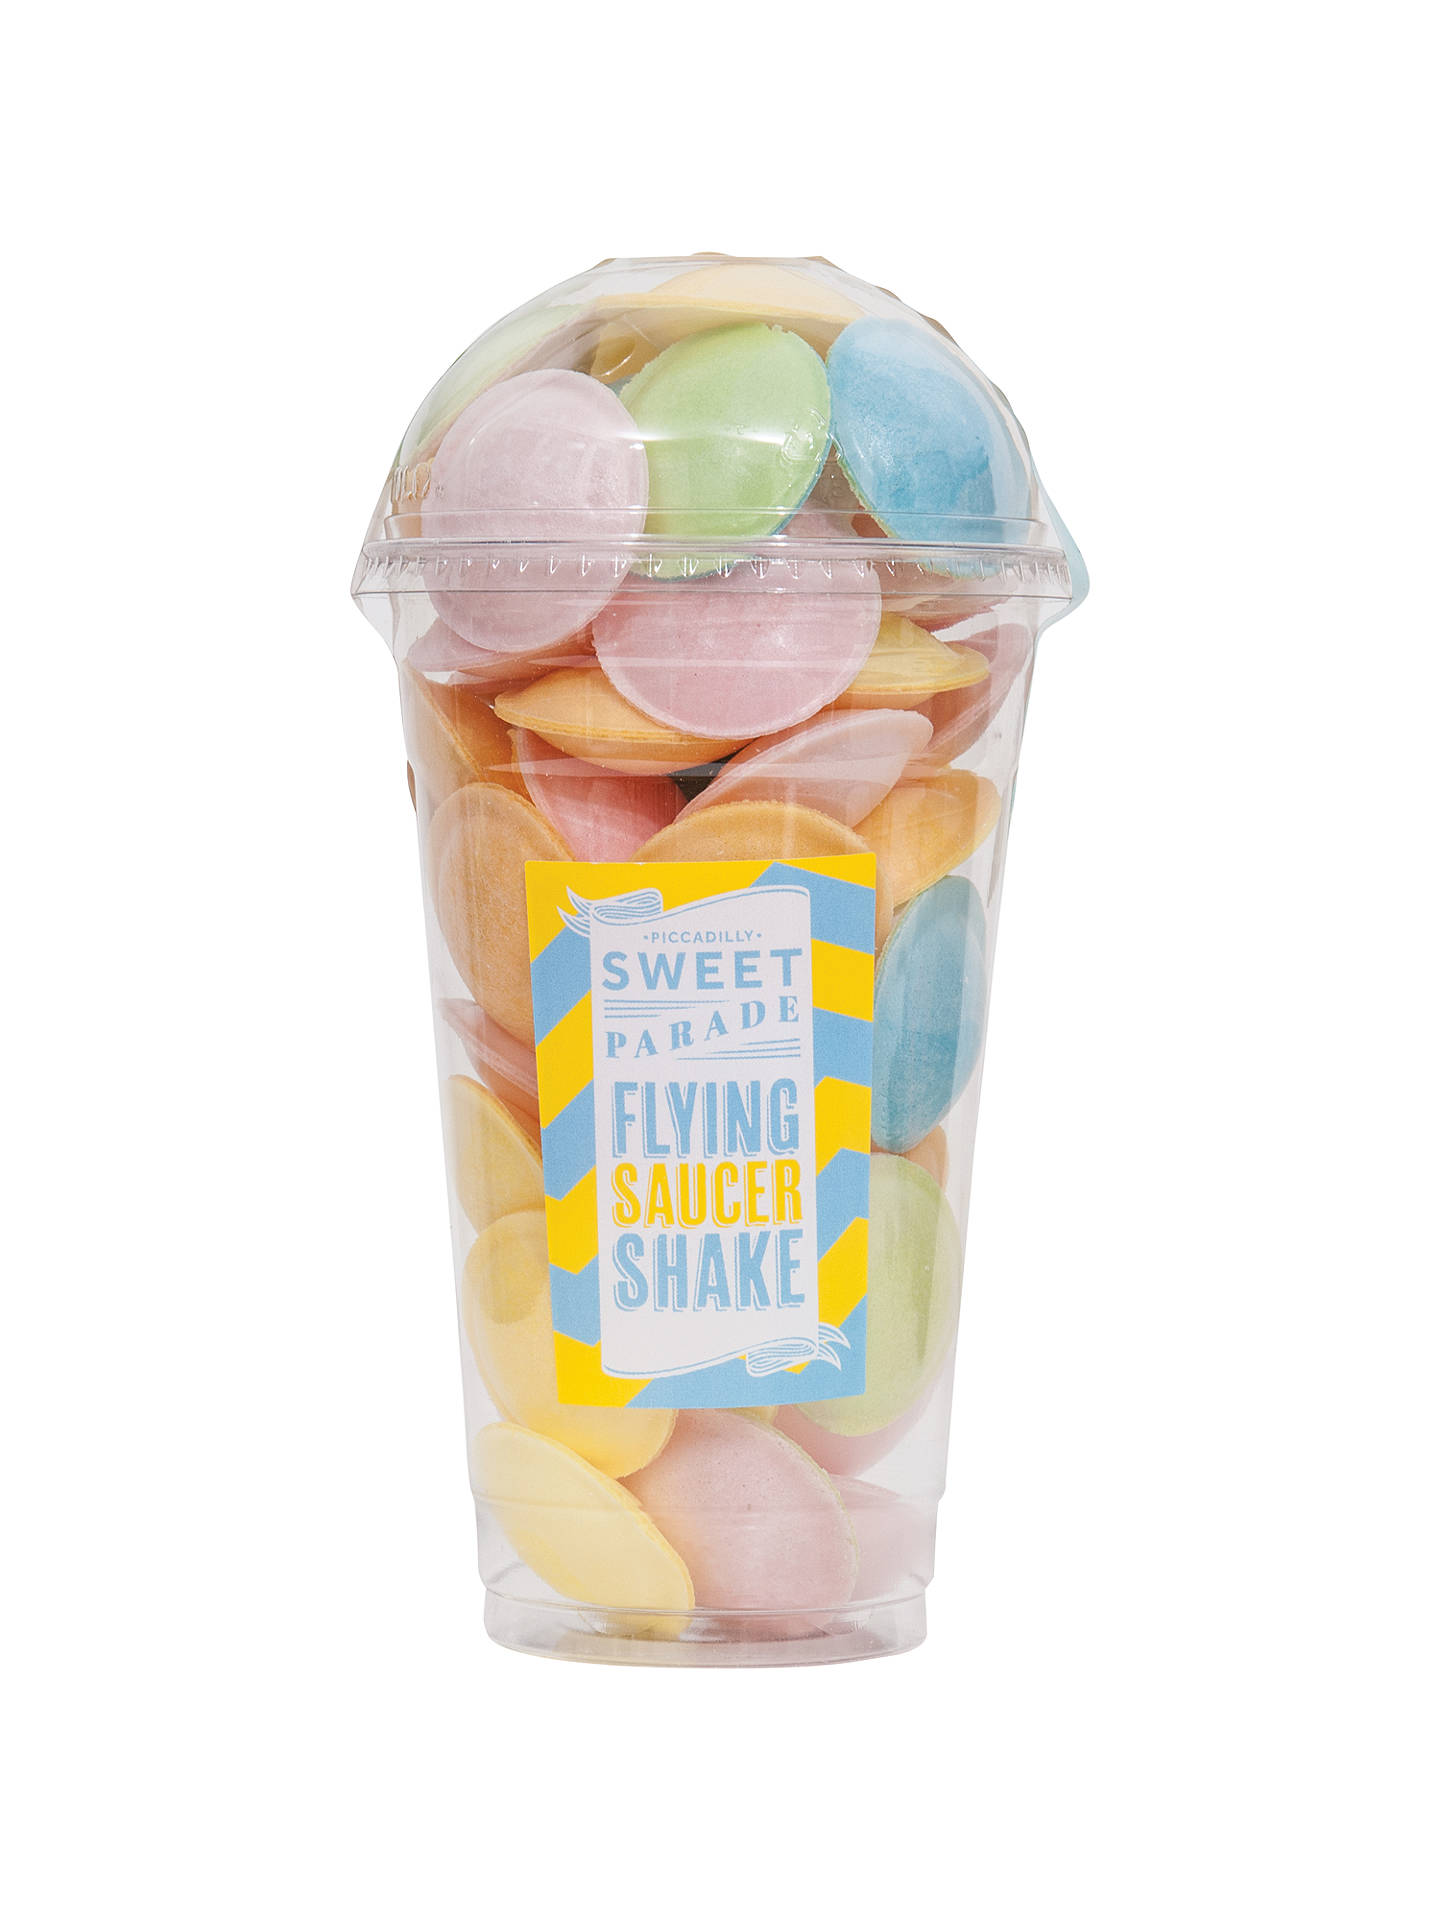 Buy Piccadilly Sweet Parade Flying Saucer Shake, 75g Online at johnlewis.com